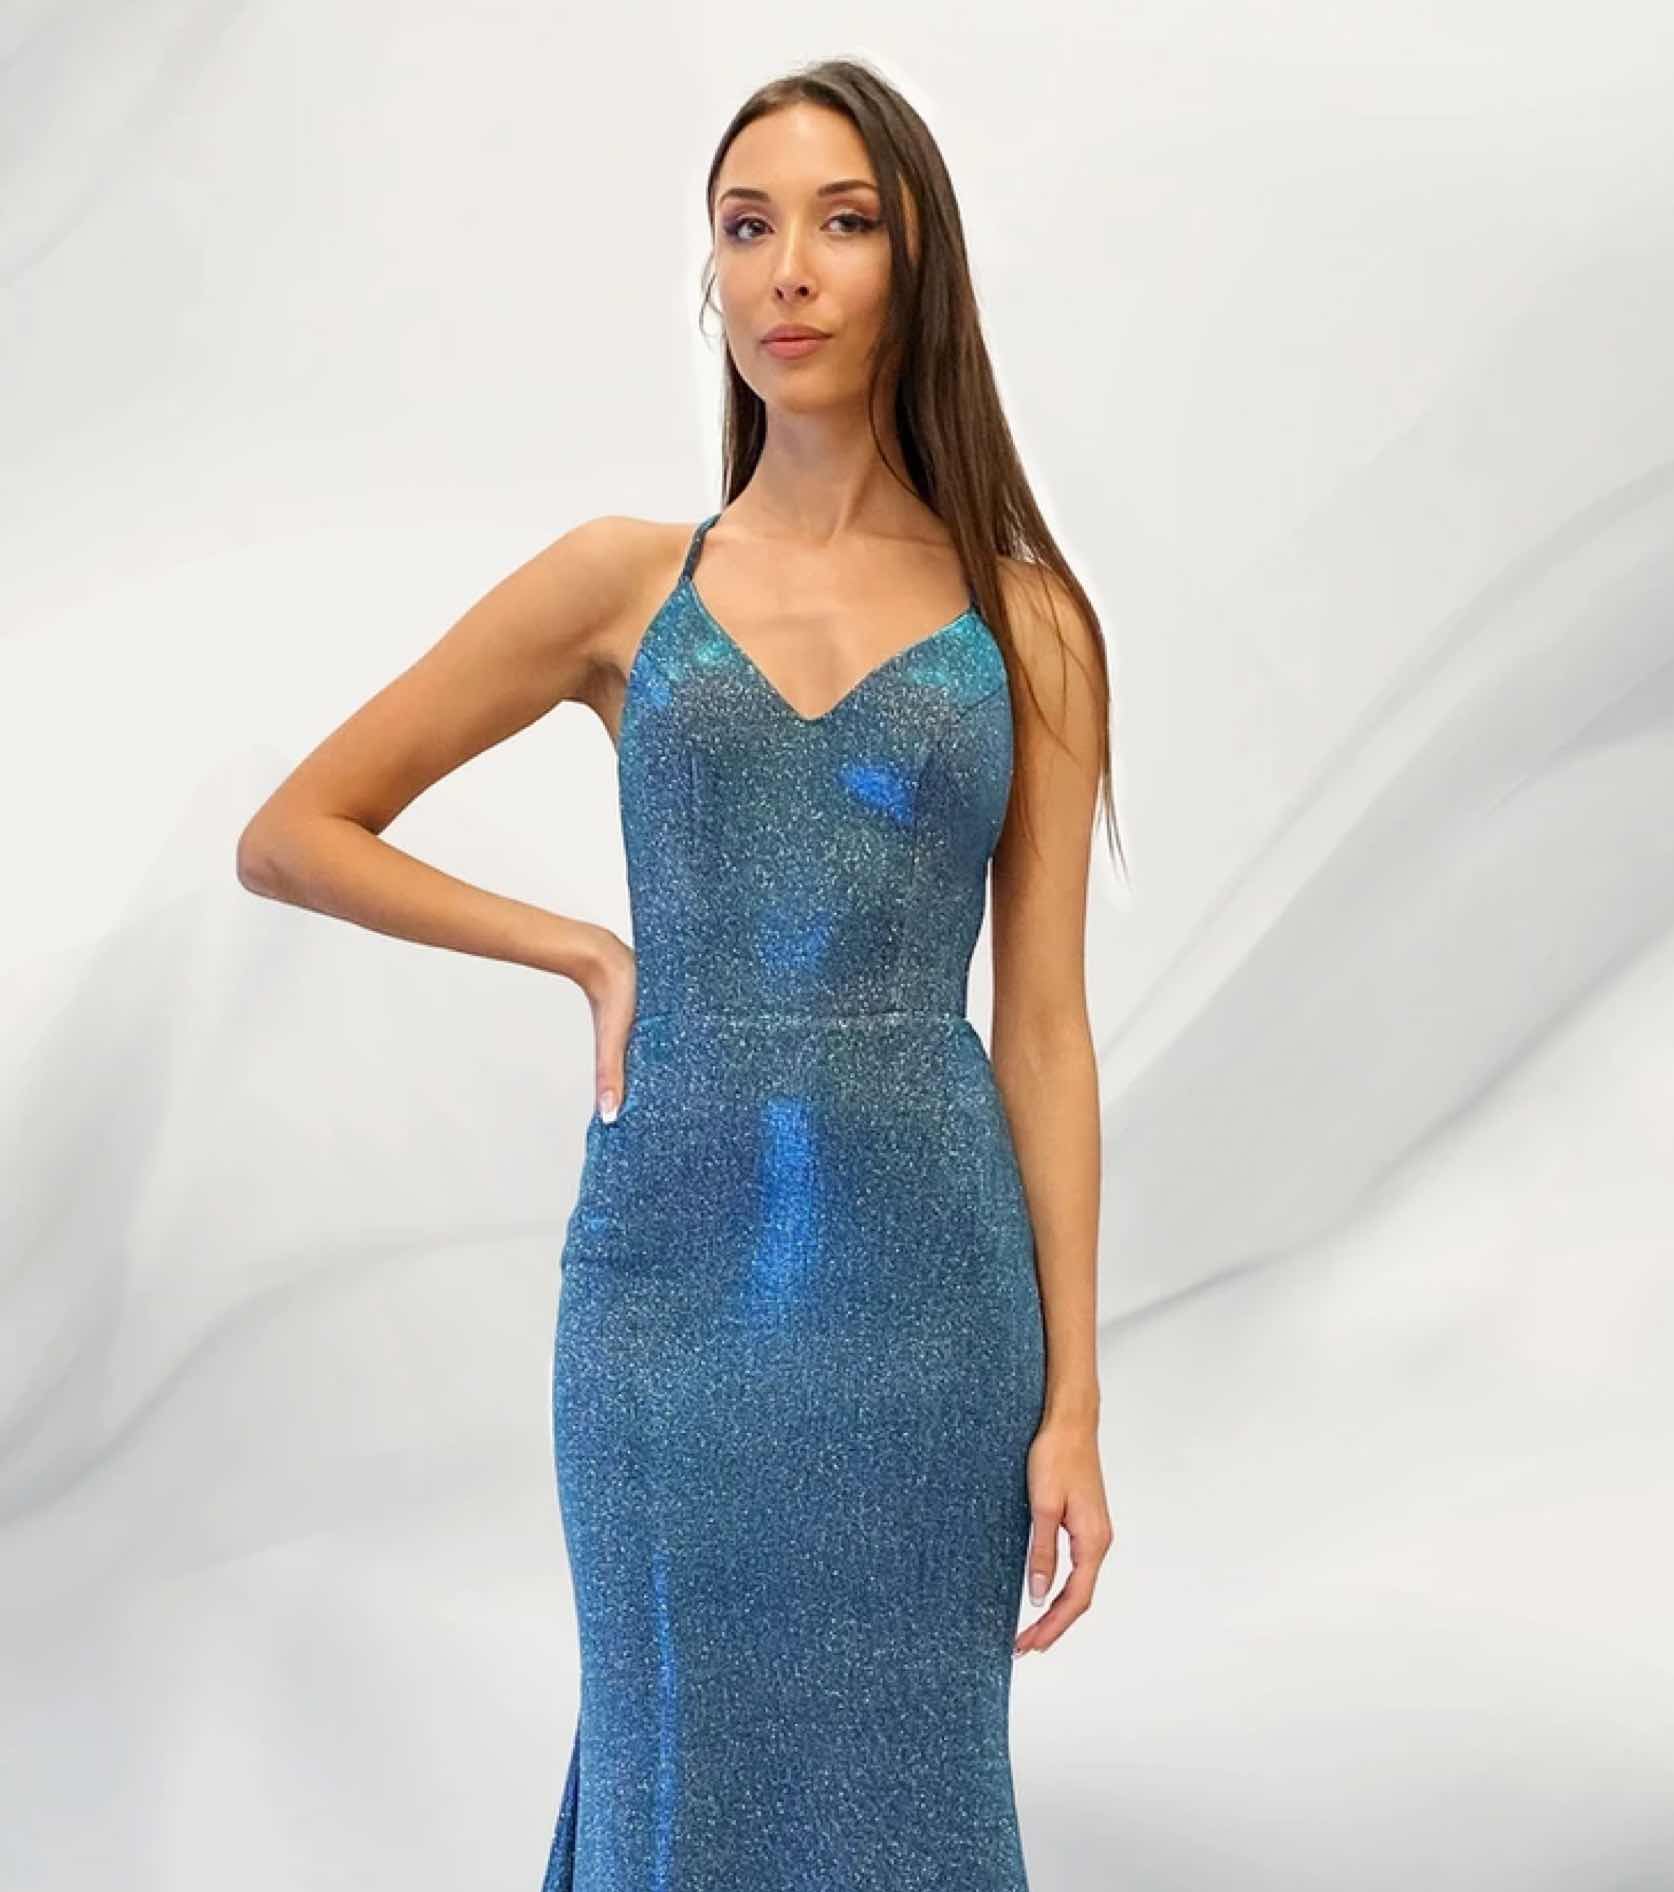 Model in blue sparkly Jessica Angel dress